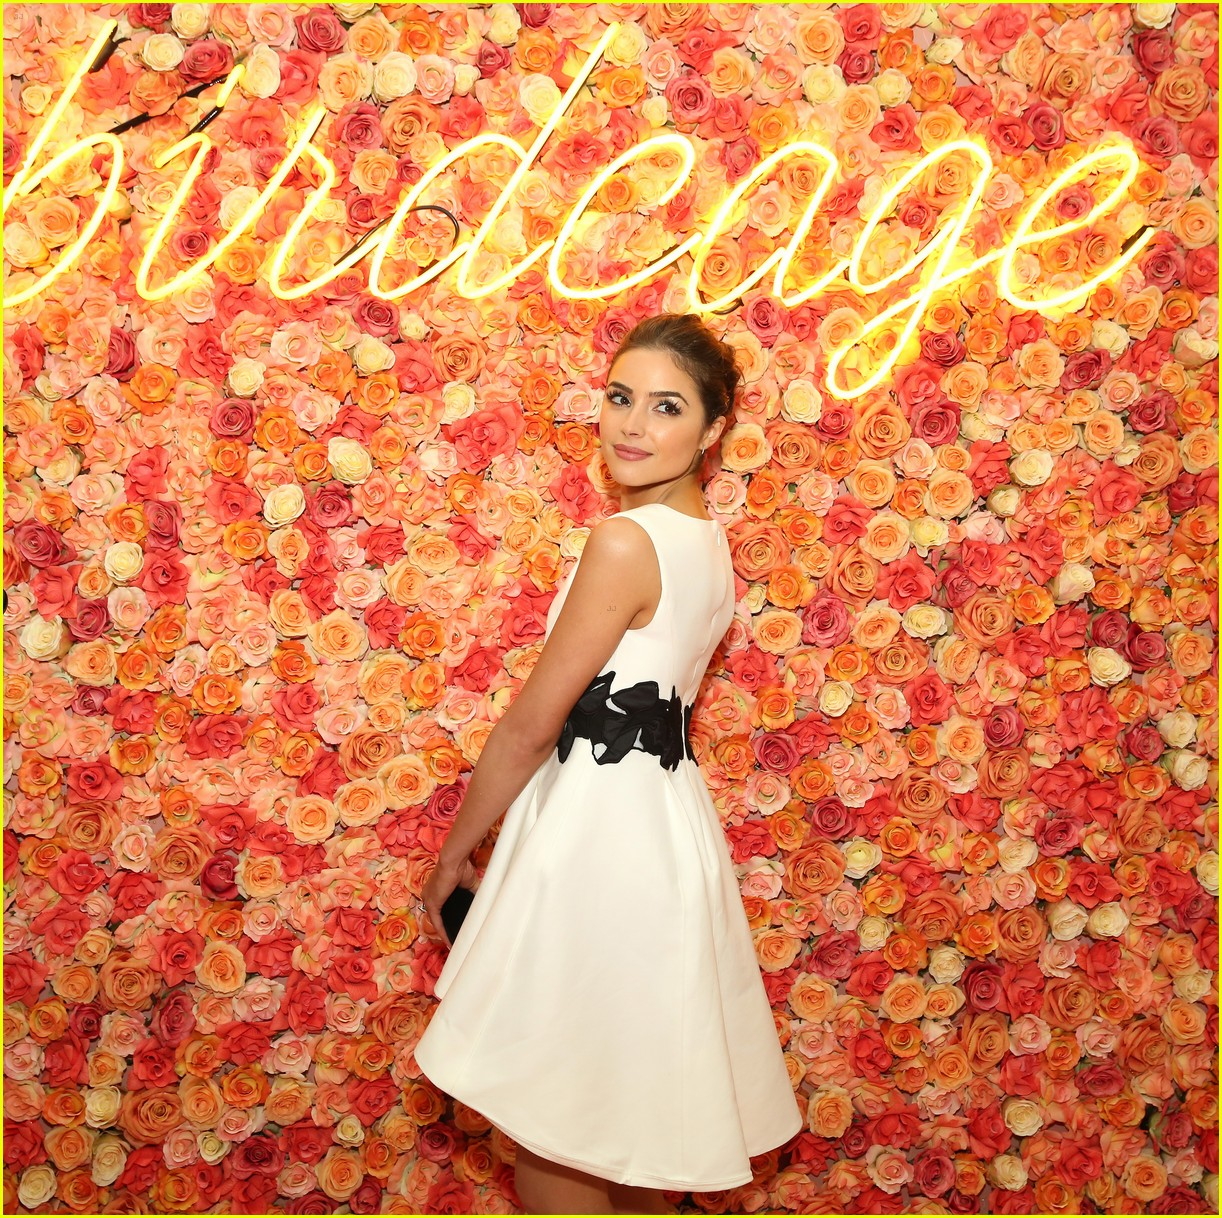 olivia culpo elle winter birdcage event lord taylor nyc 12